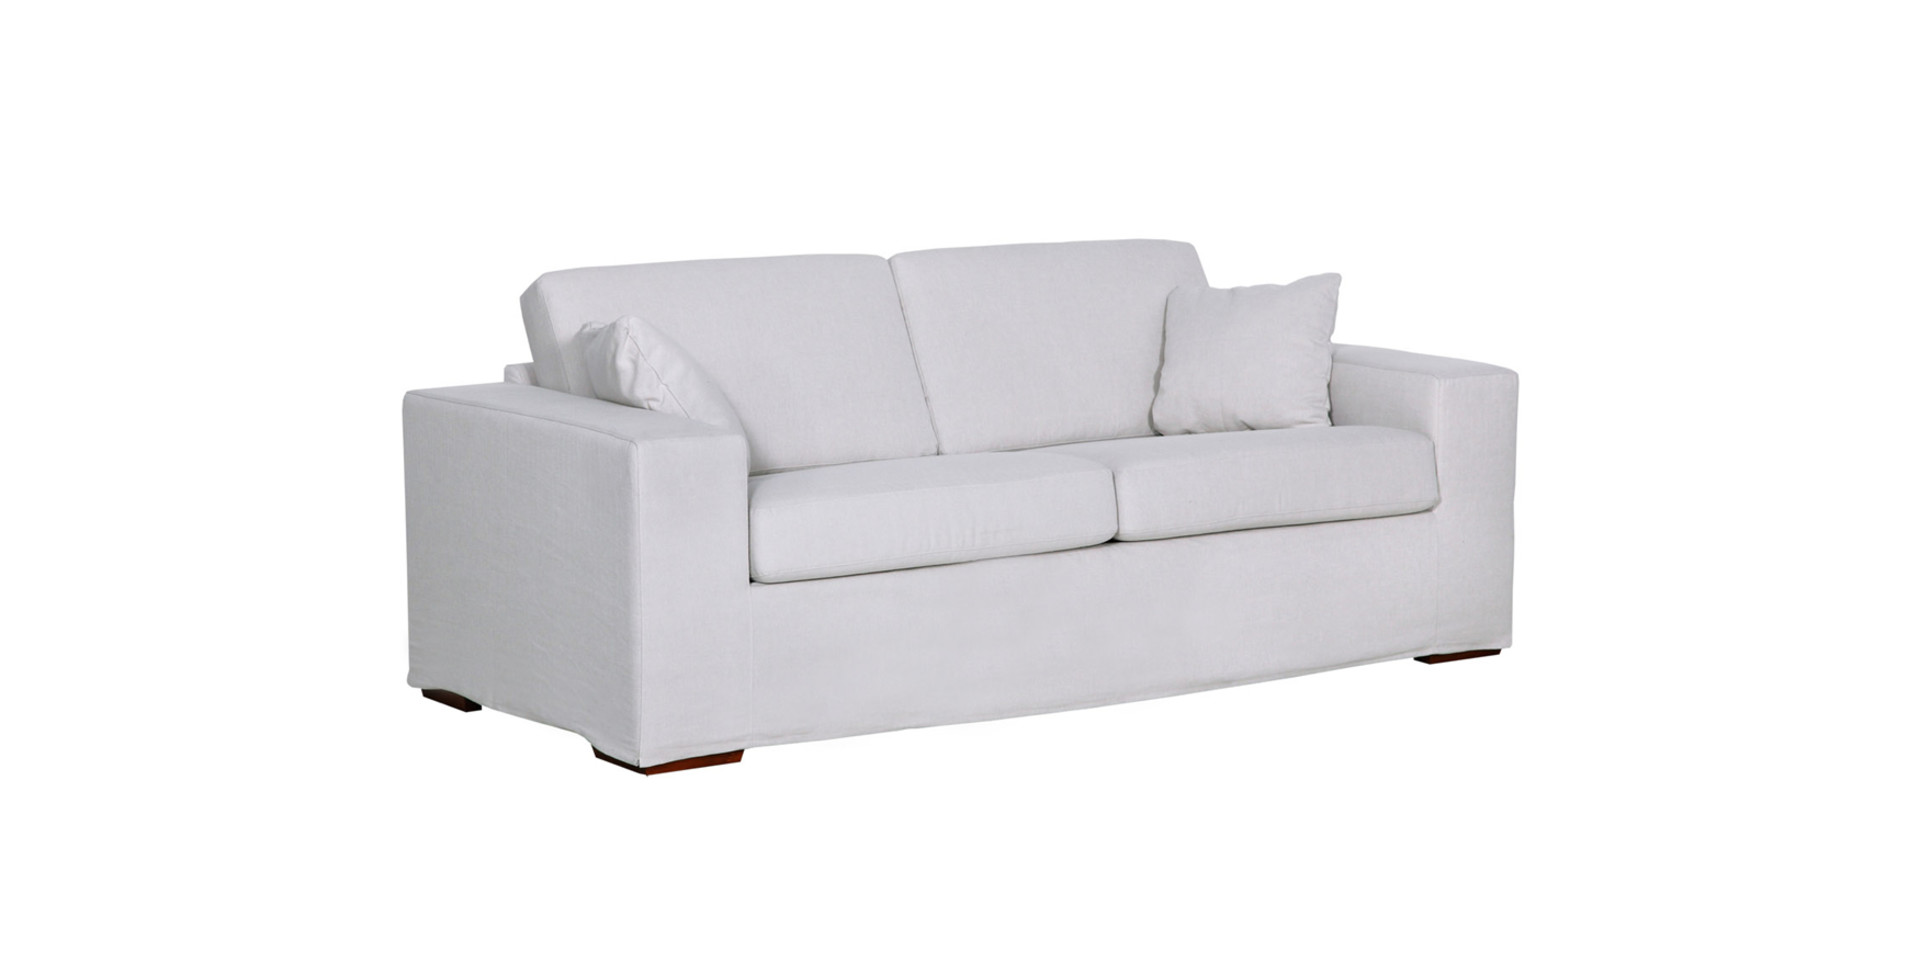 sits-antares-canape-sofa_bed3_caleido3790_light_beige_2